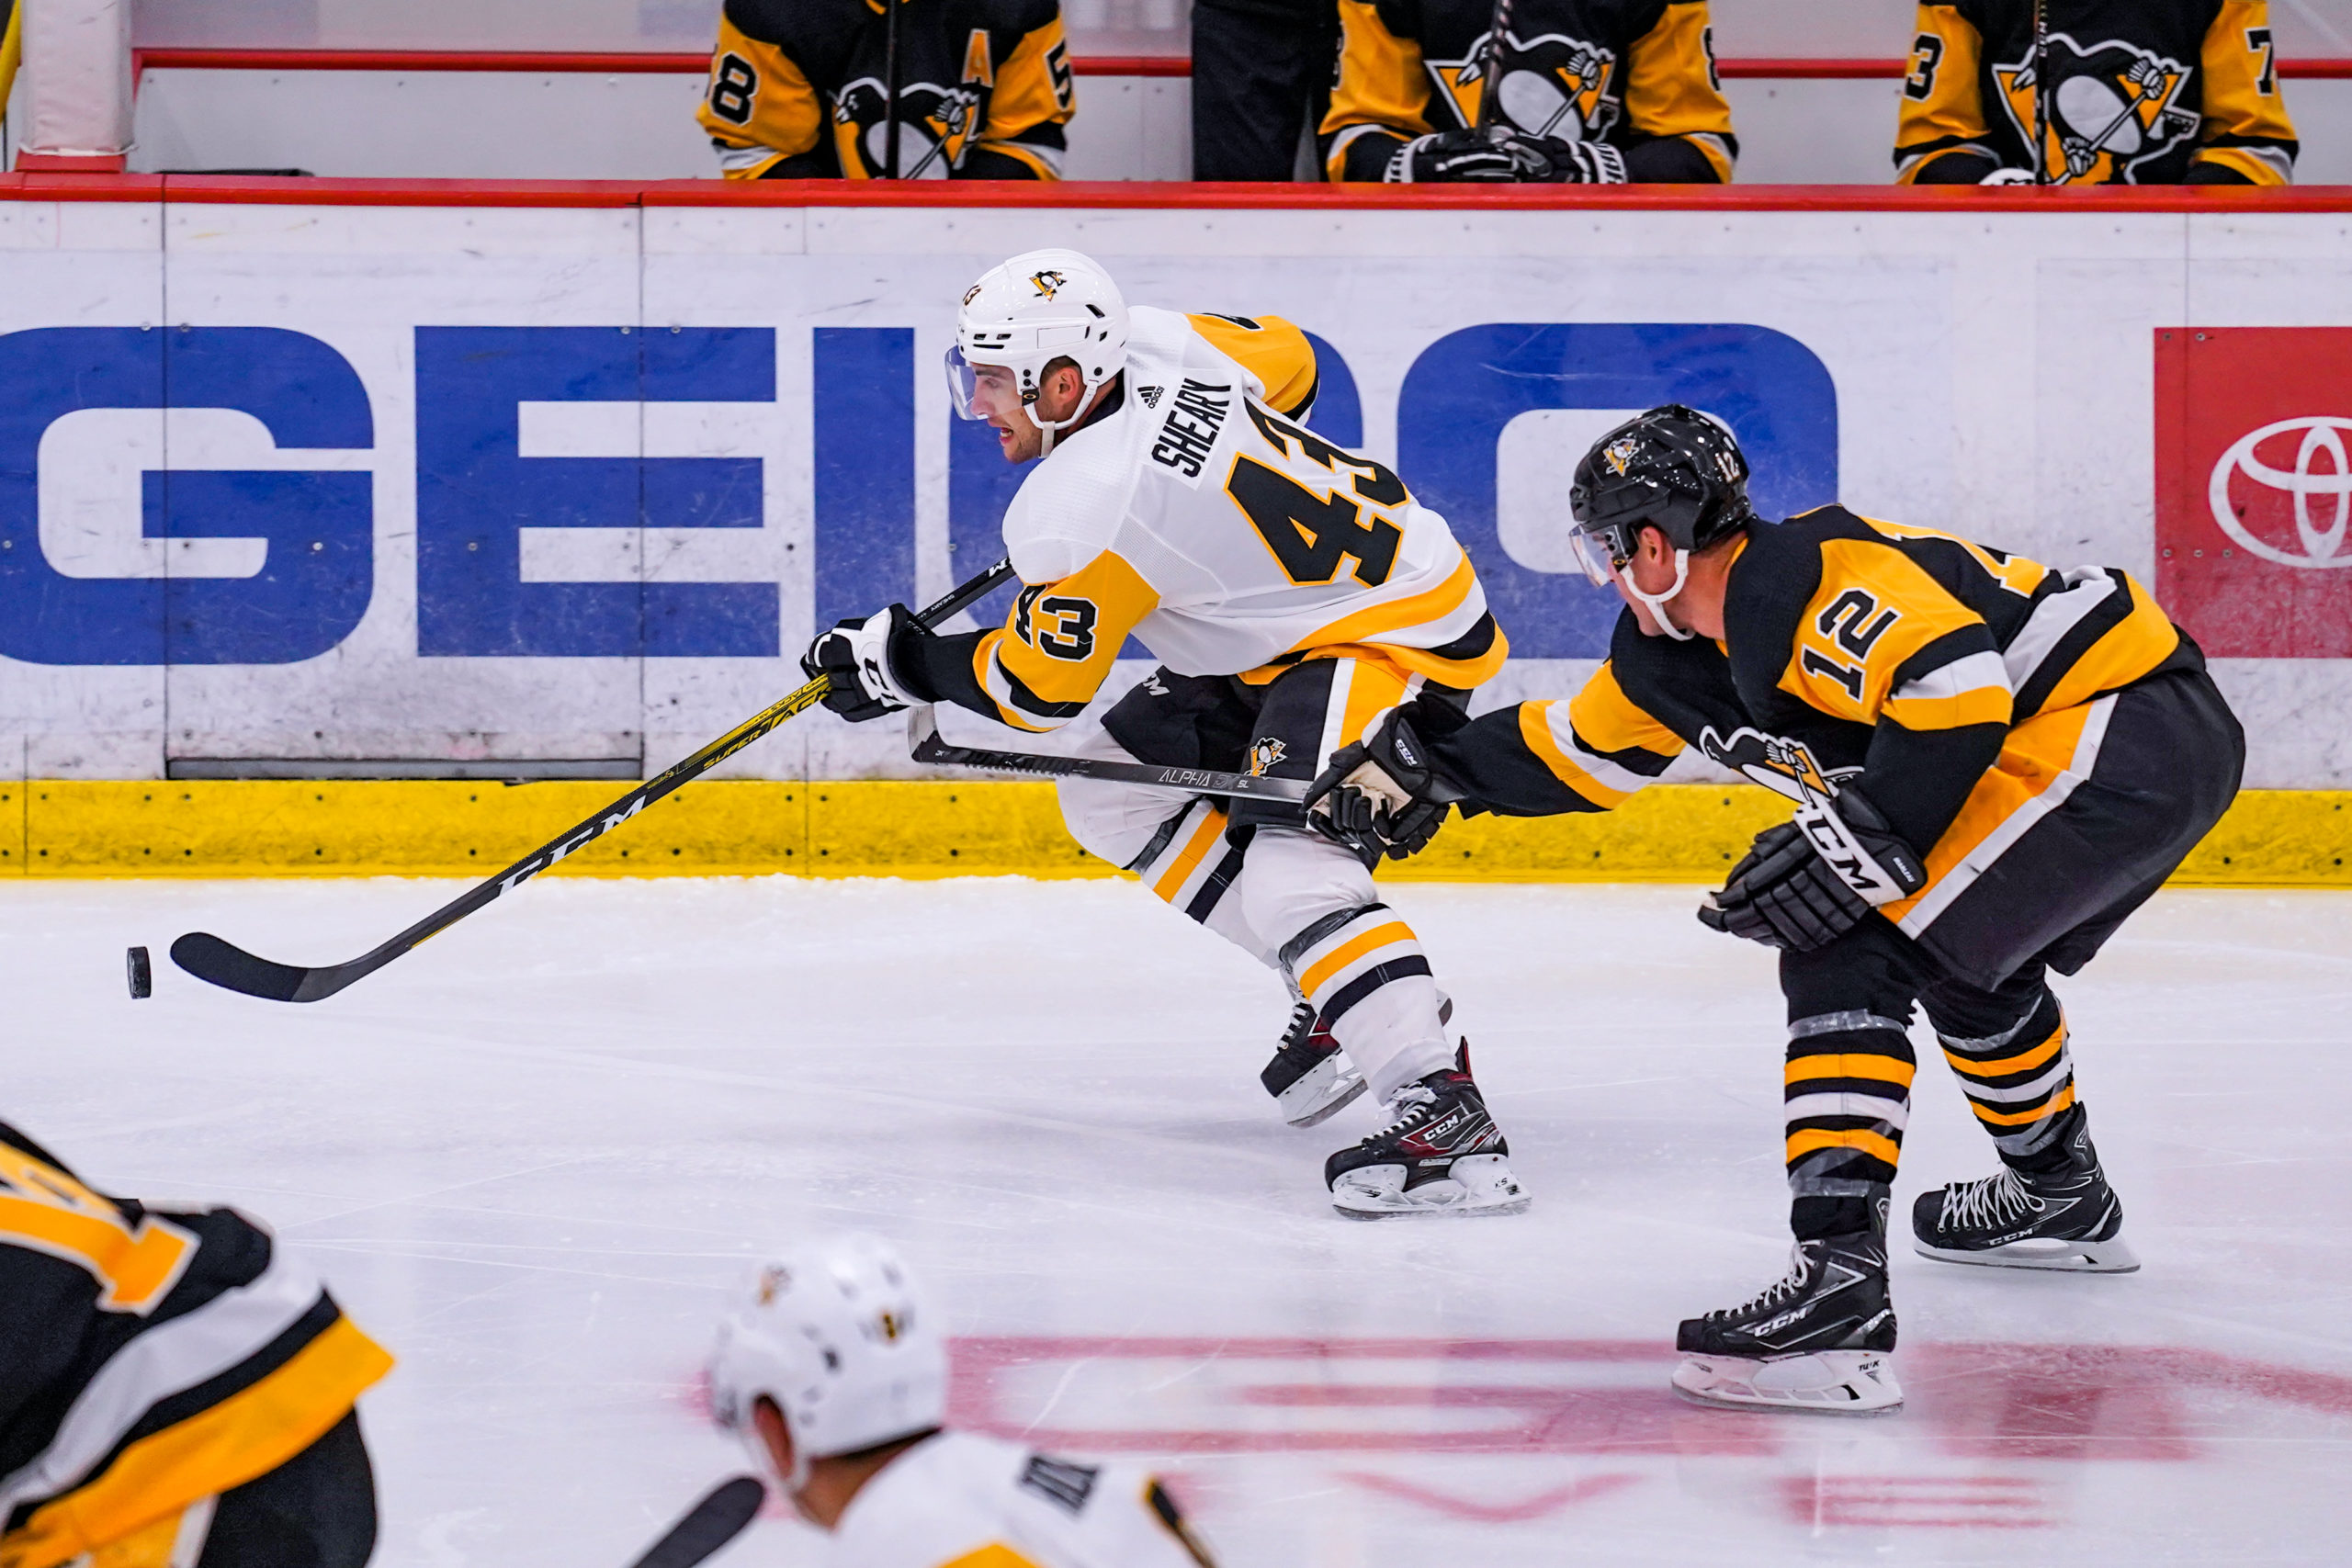 Conor Sheary Skates with the puck: Photo courtesy of Pittsburgh Penguins